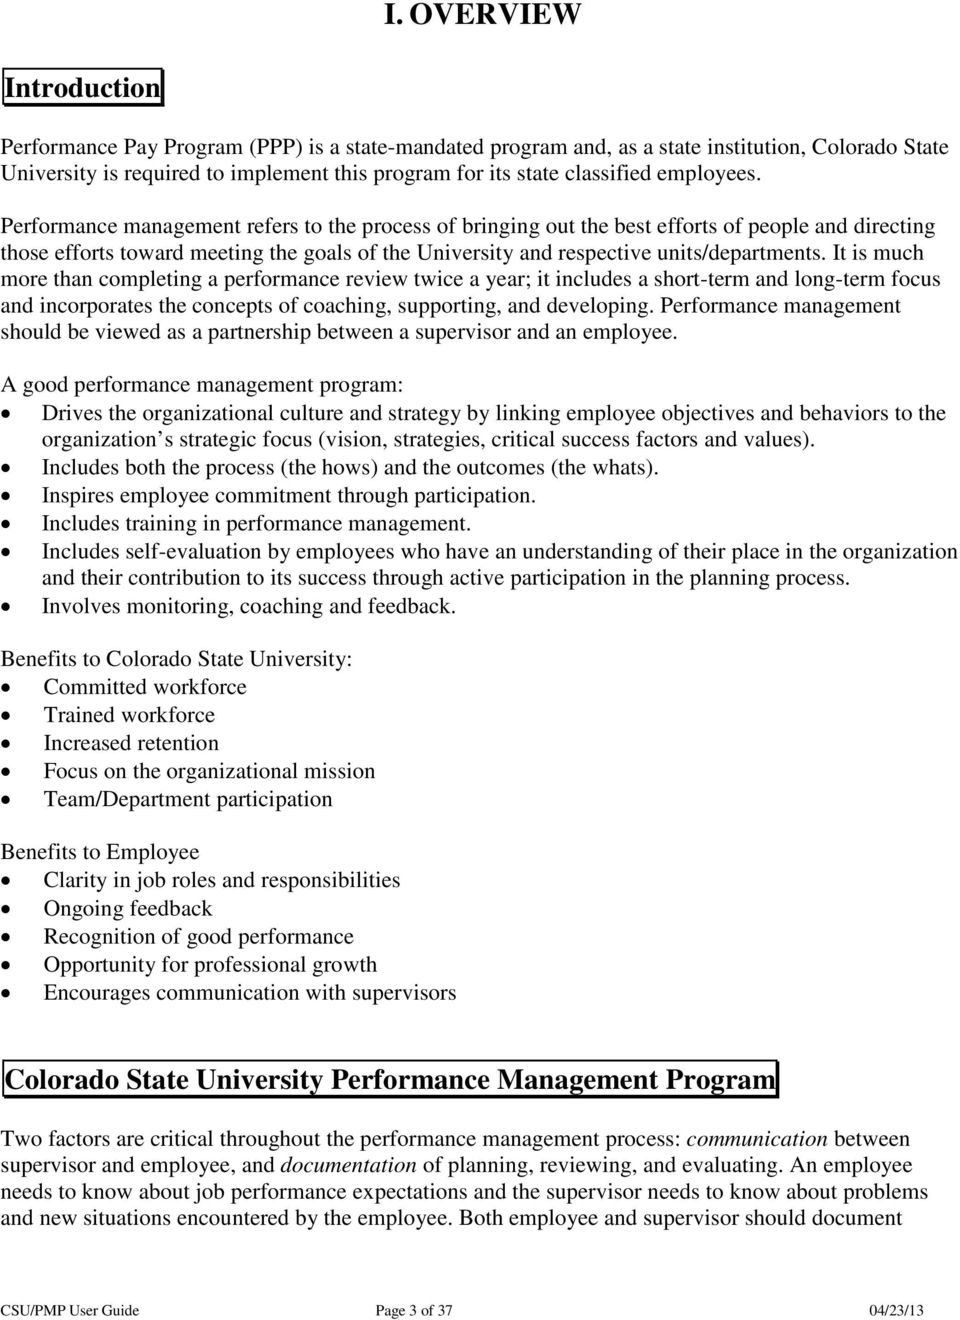 Performance management refers to the process of bringing out the best efforts of people and directing those efforts toward meeting the goals of the University and respective units/departments.